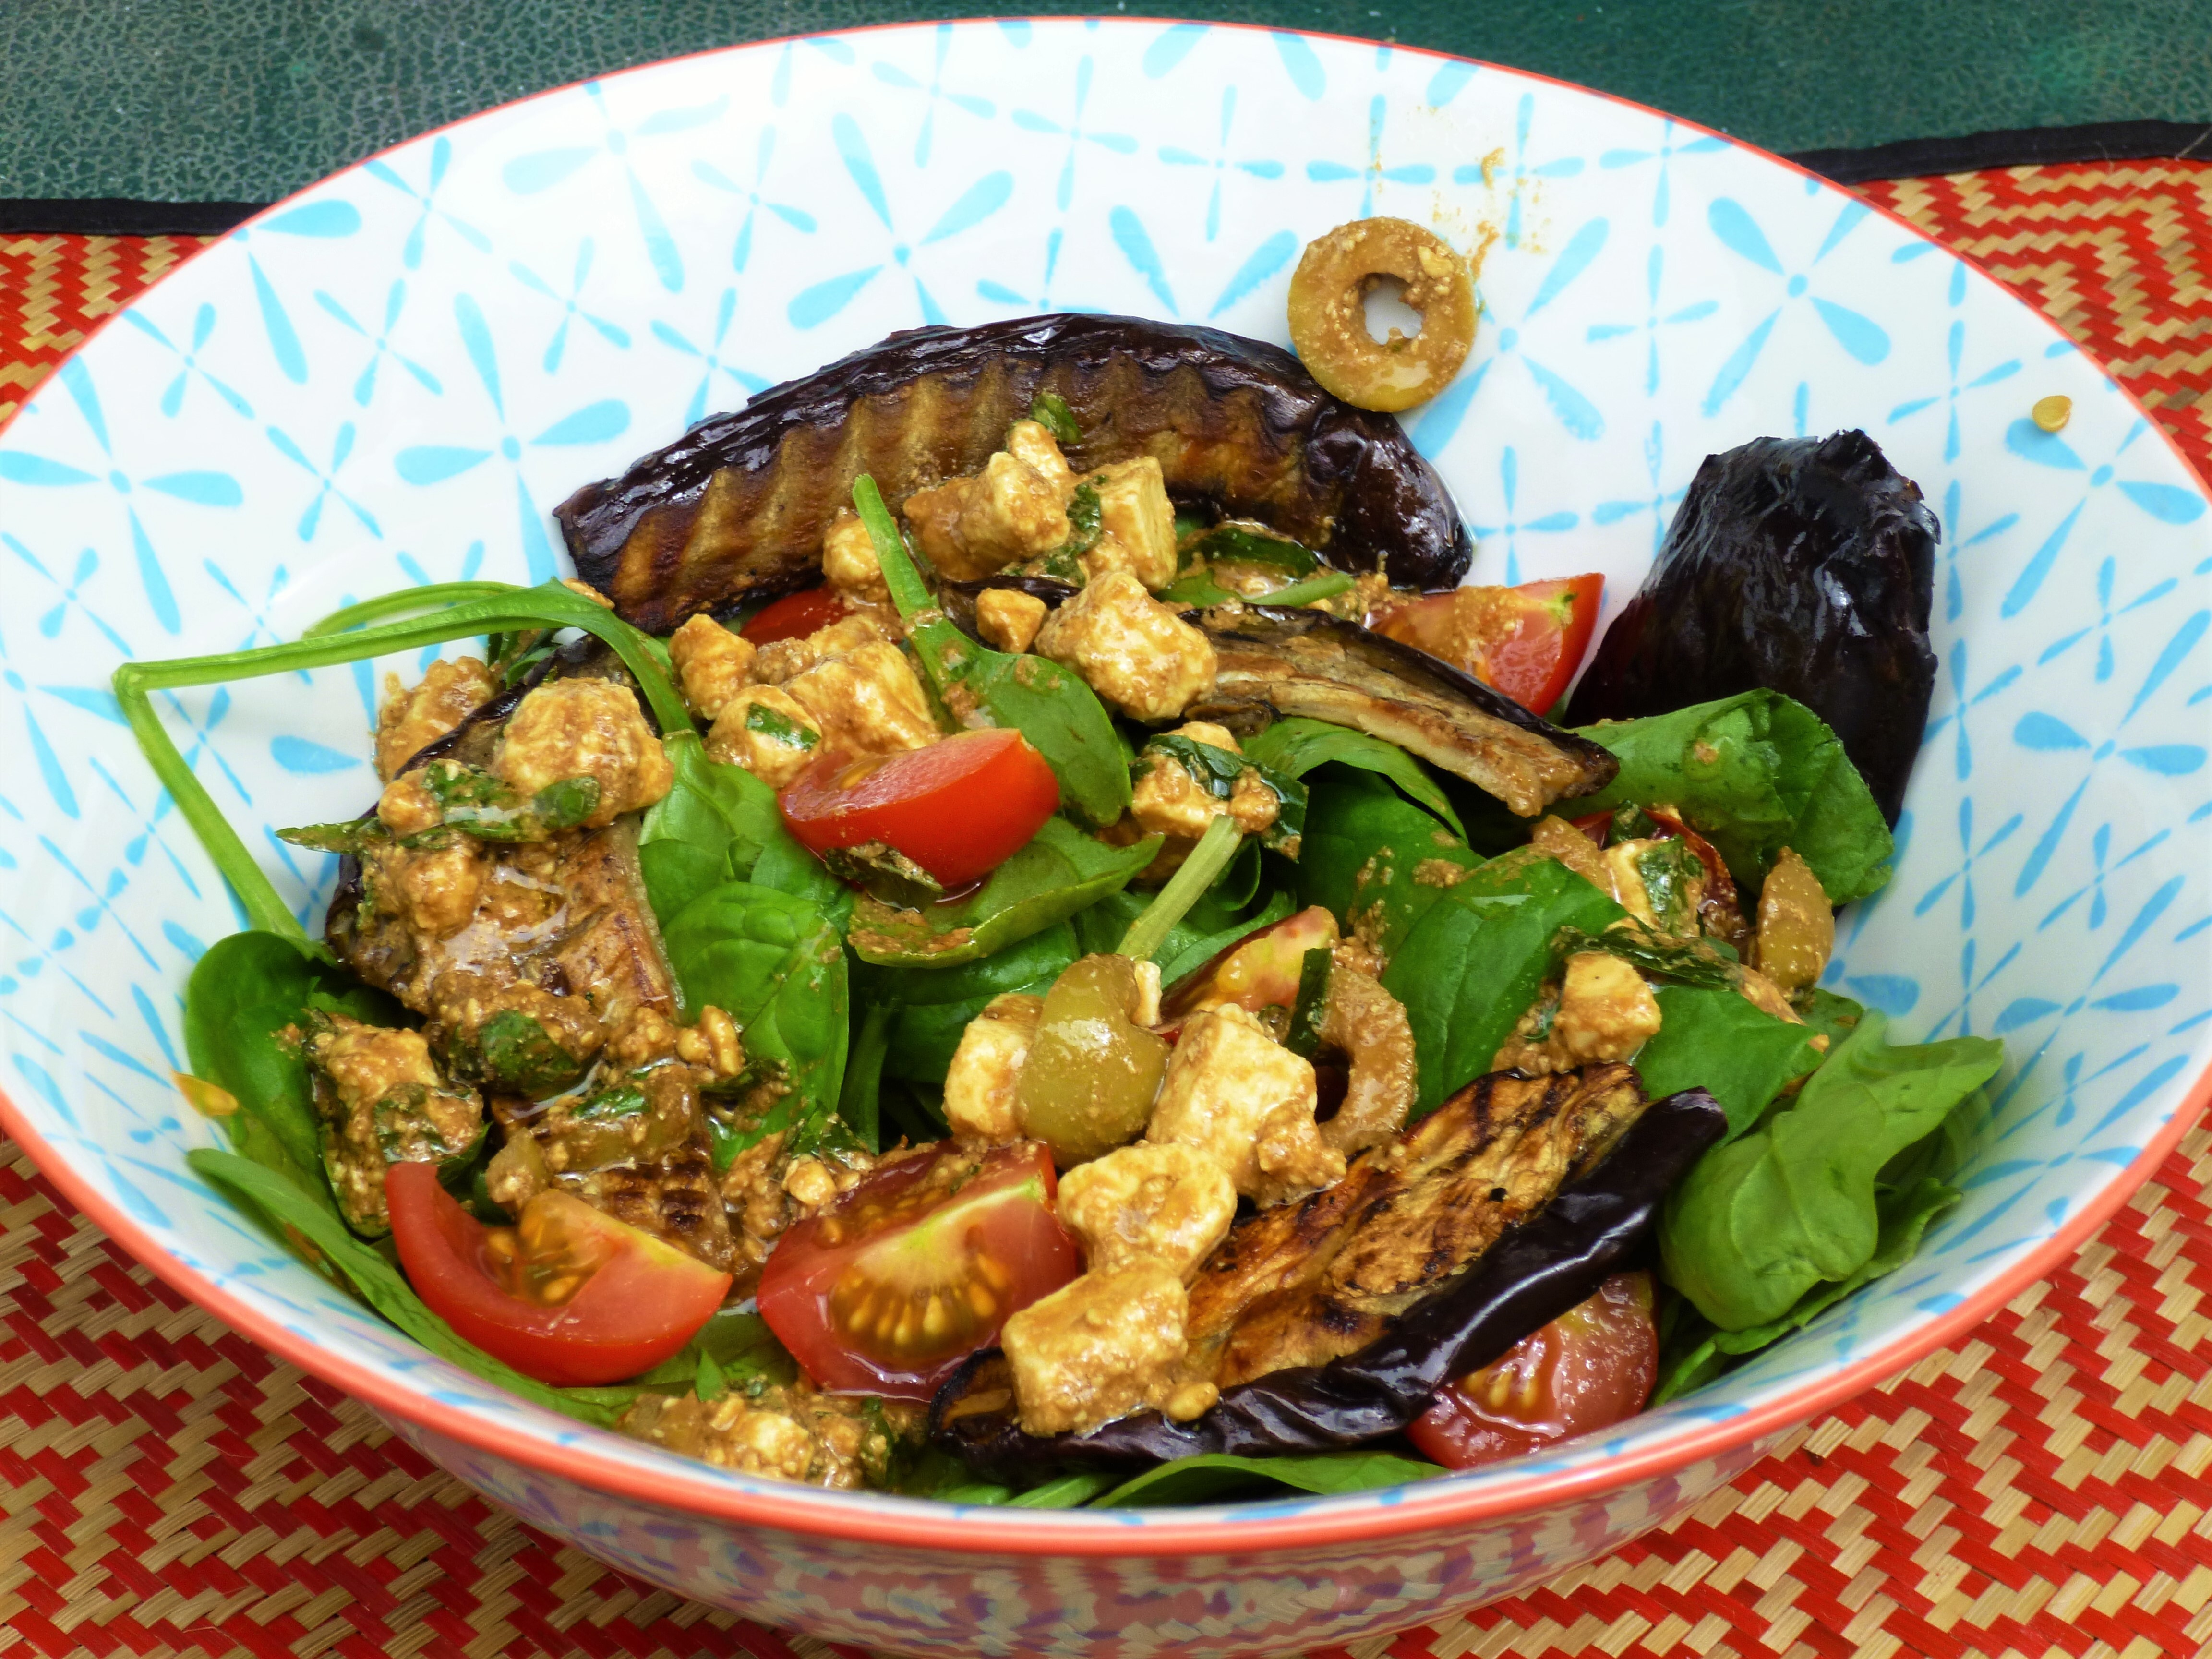 Roasted Eggplant/Aubergine and Spinach Salad with a Feta, Olive, Lemon and Herb Dressing Recipe